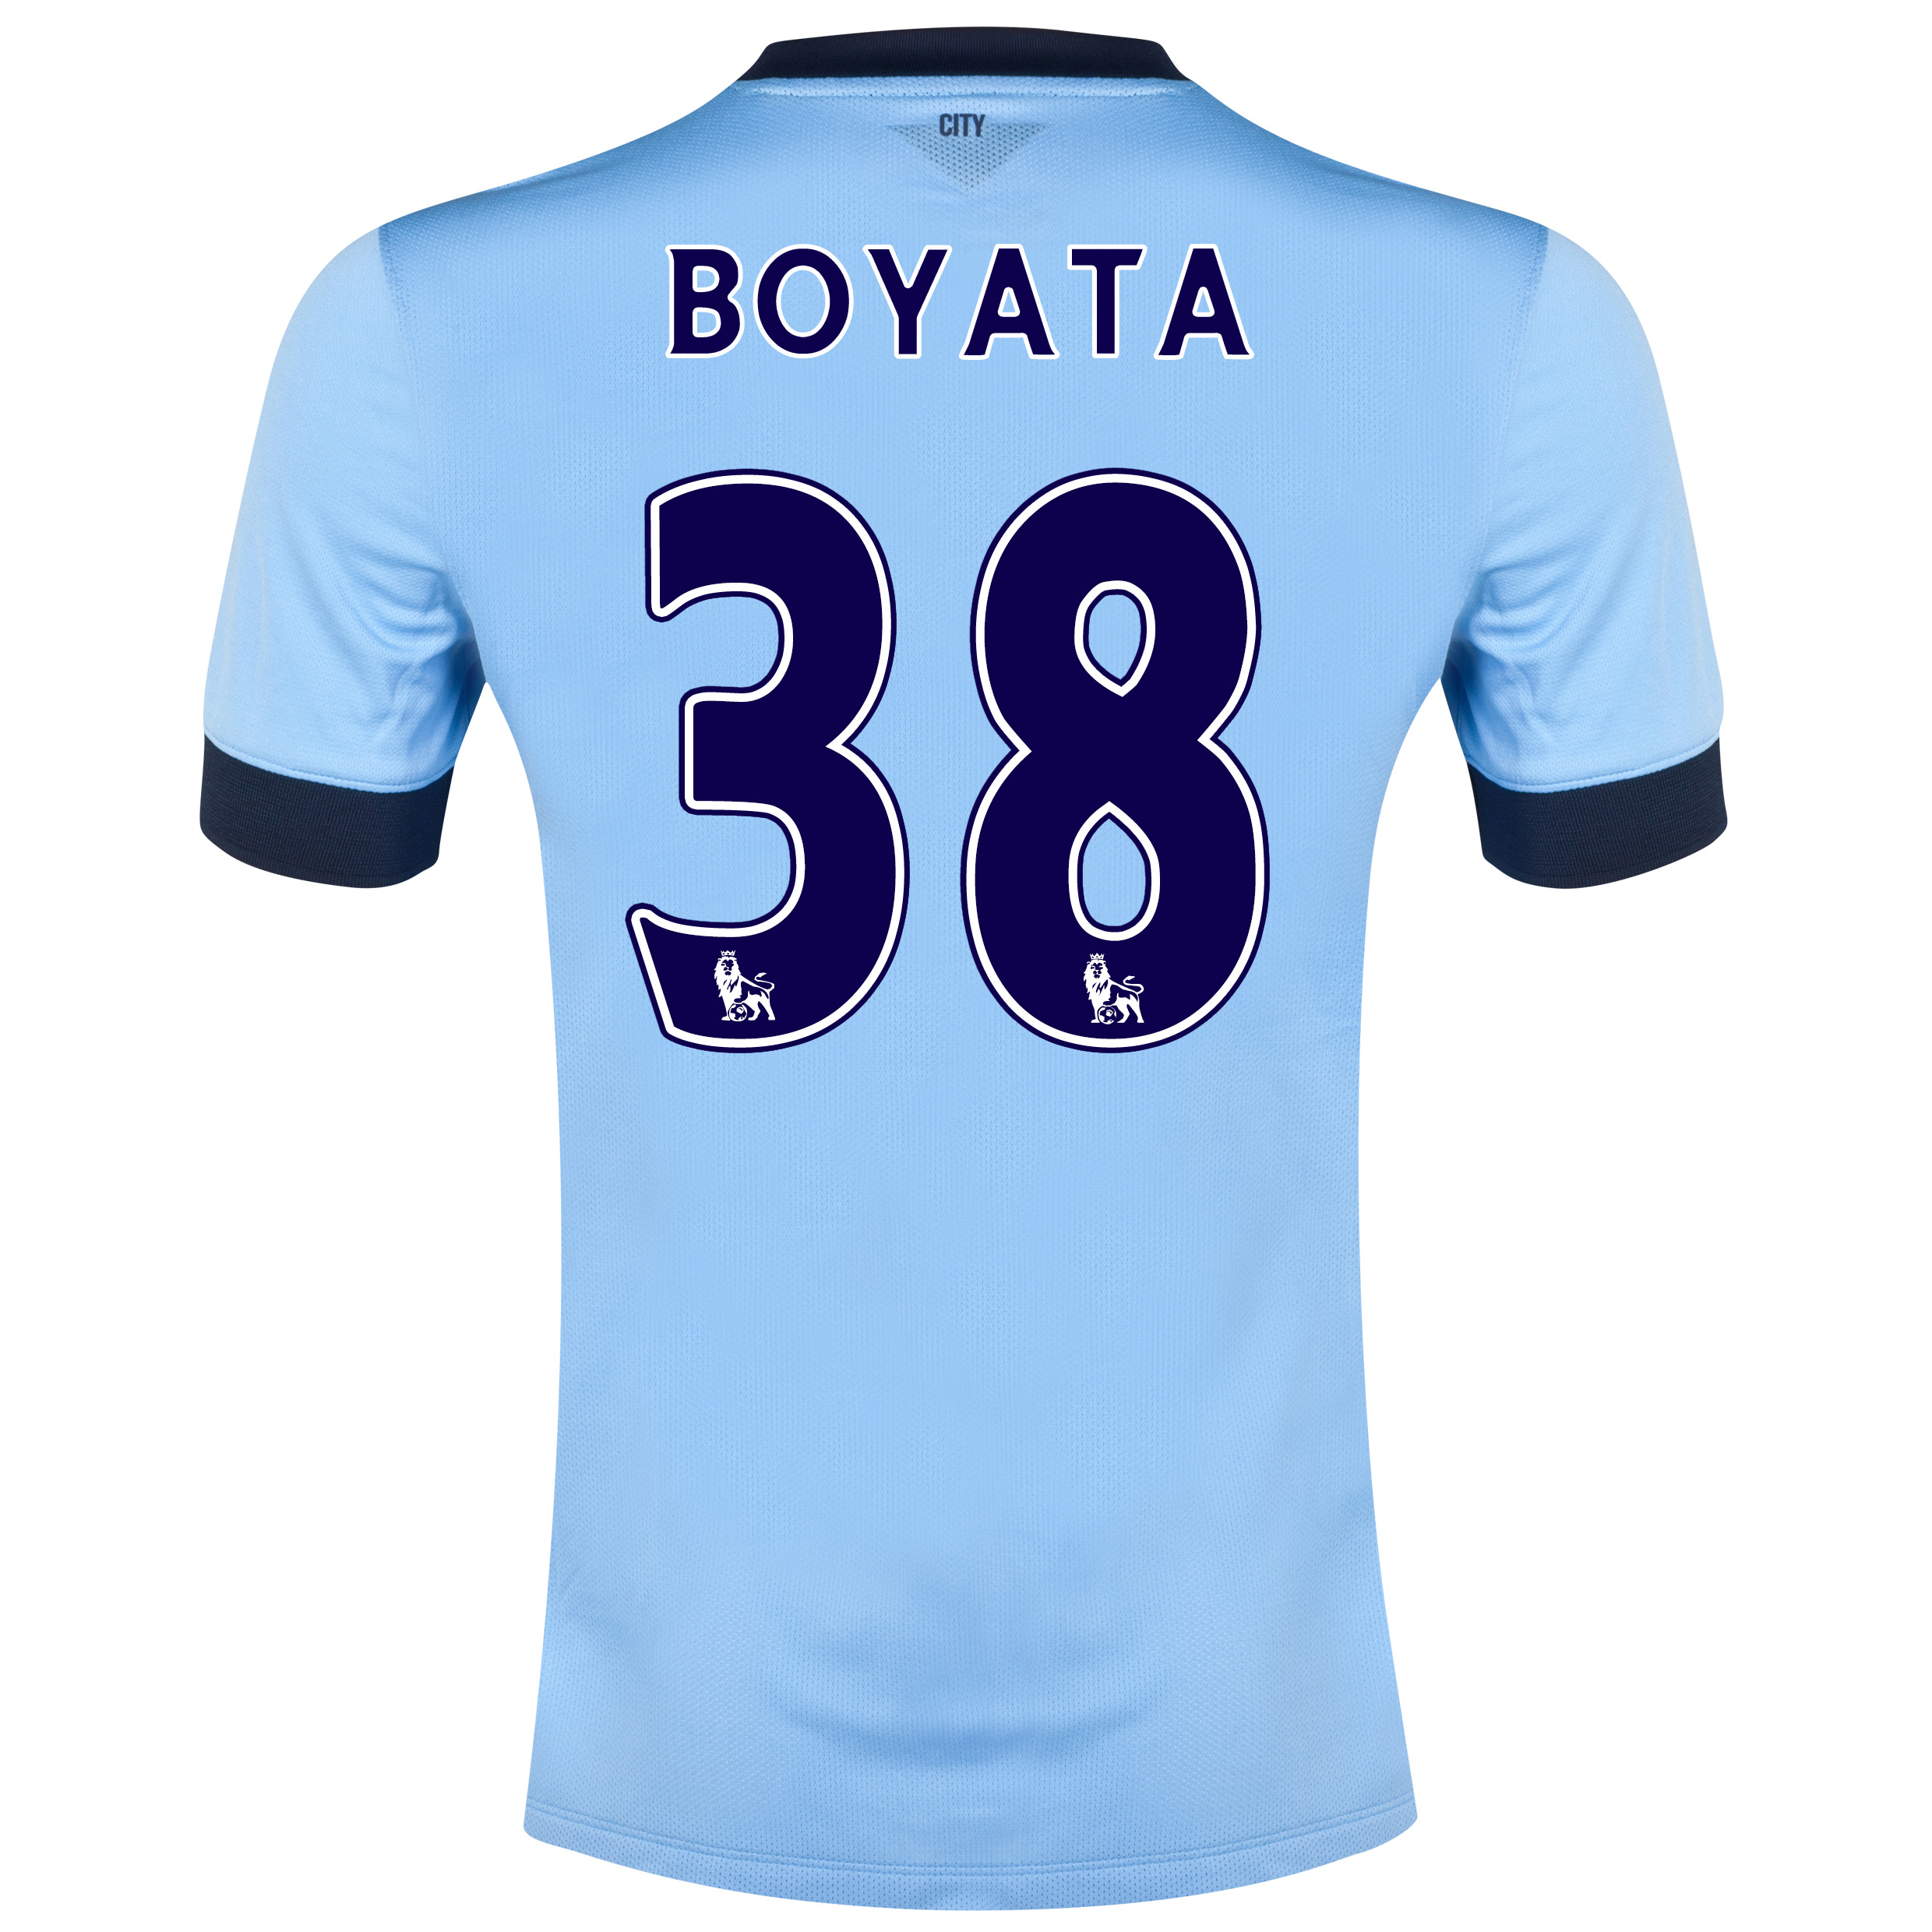 Manchester City Home Shirt 2014/15 - Kids Sky Blue with Boyata 38 printing